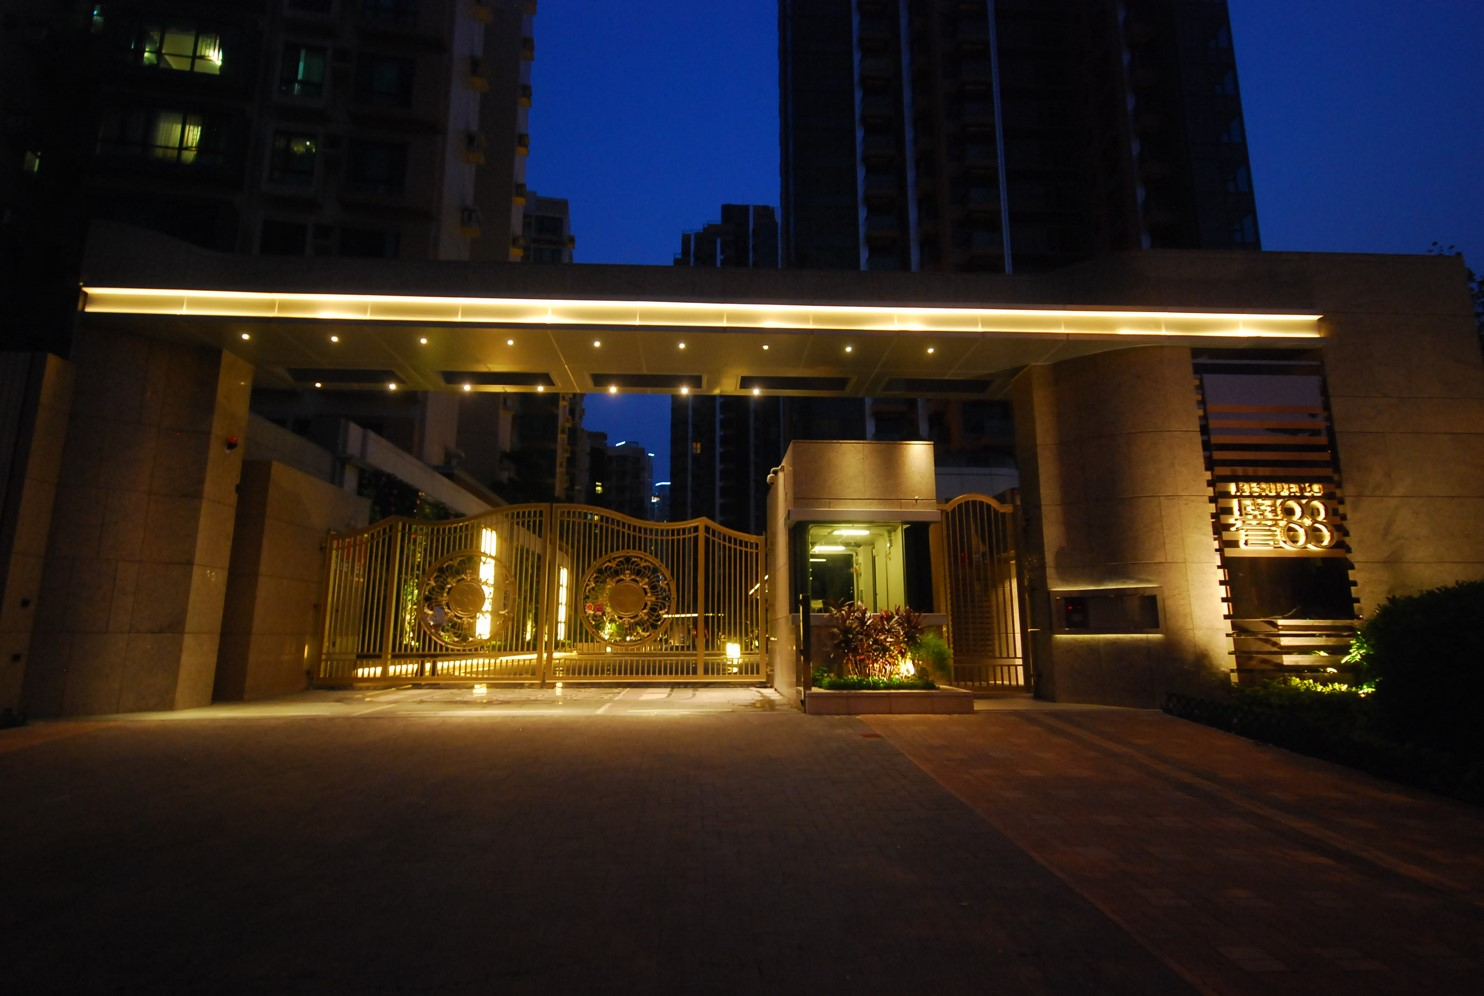 Club House, Residence 88, Hong Kong 2